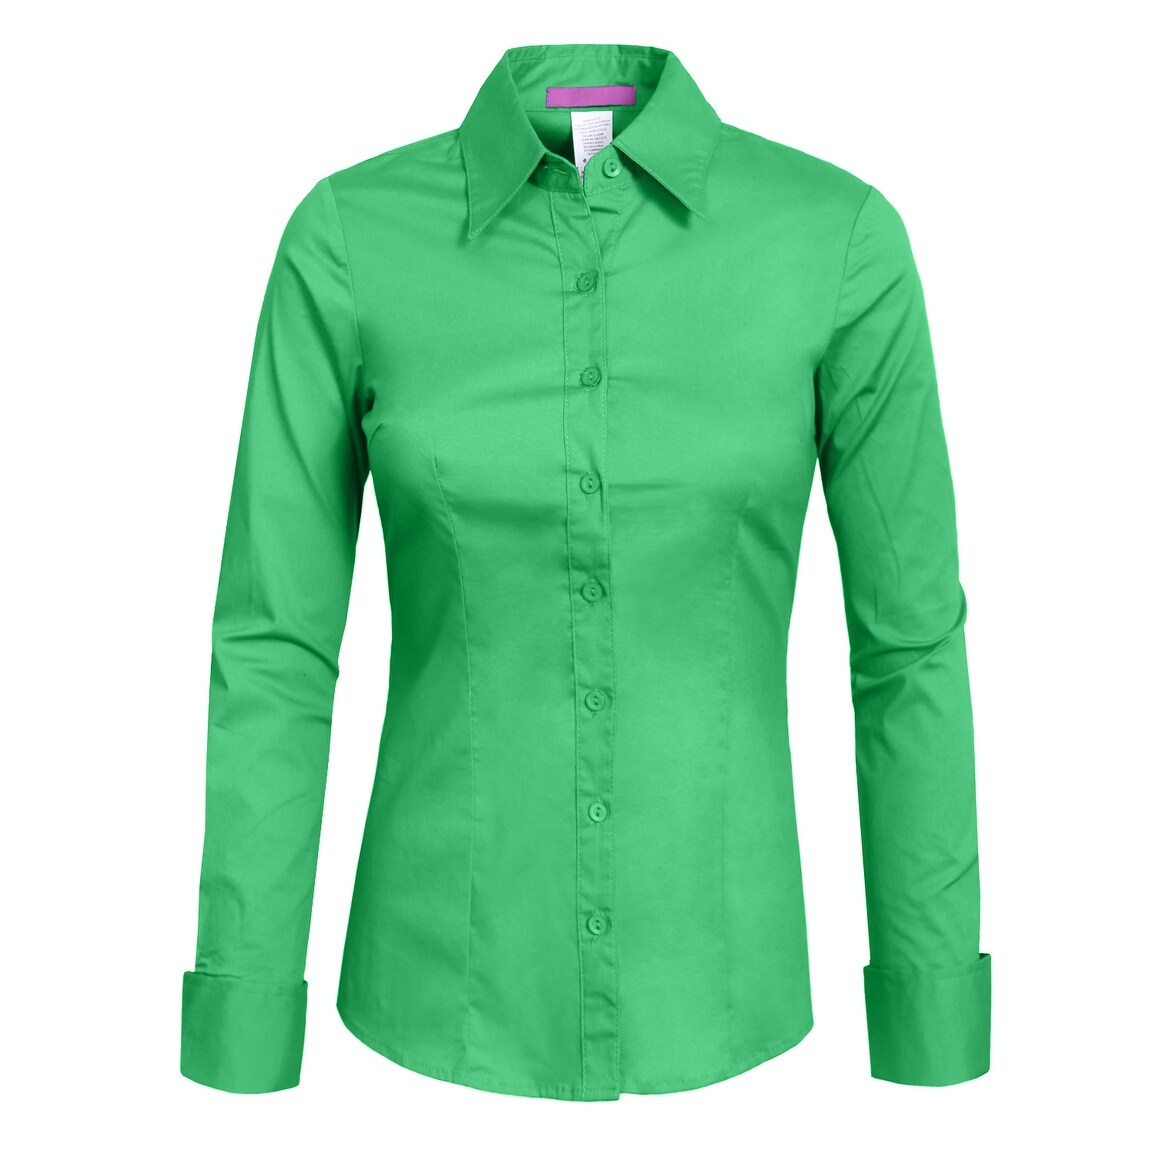 Womens Hunter Green Dress Shirt Bcd Tofu House